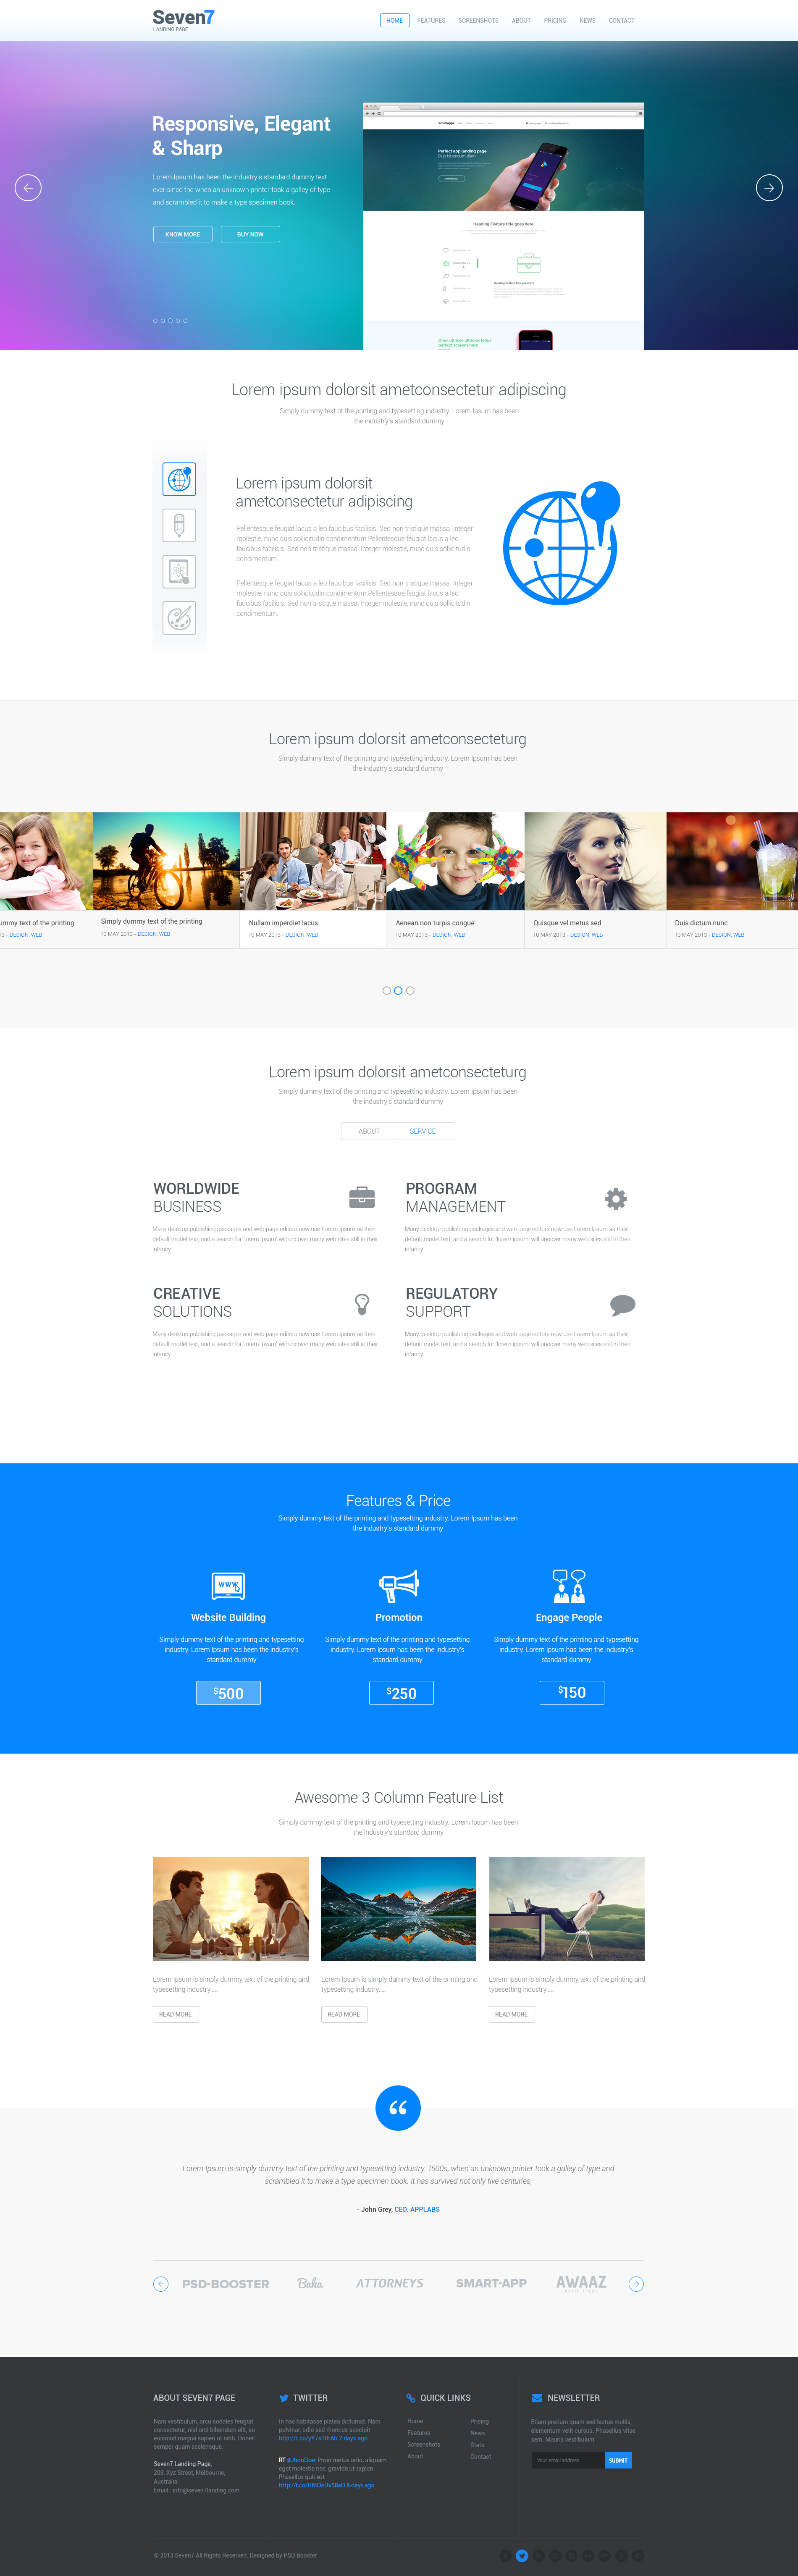 Seven7 Landing Page By Psdbooster Themeforest